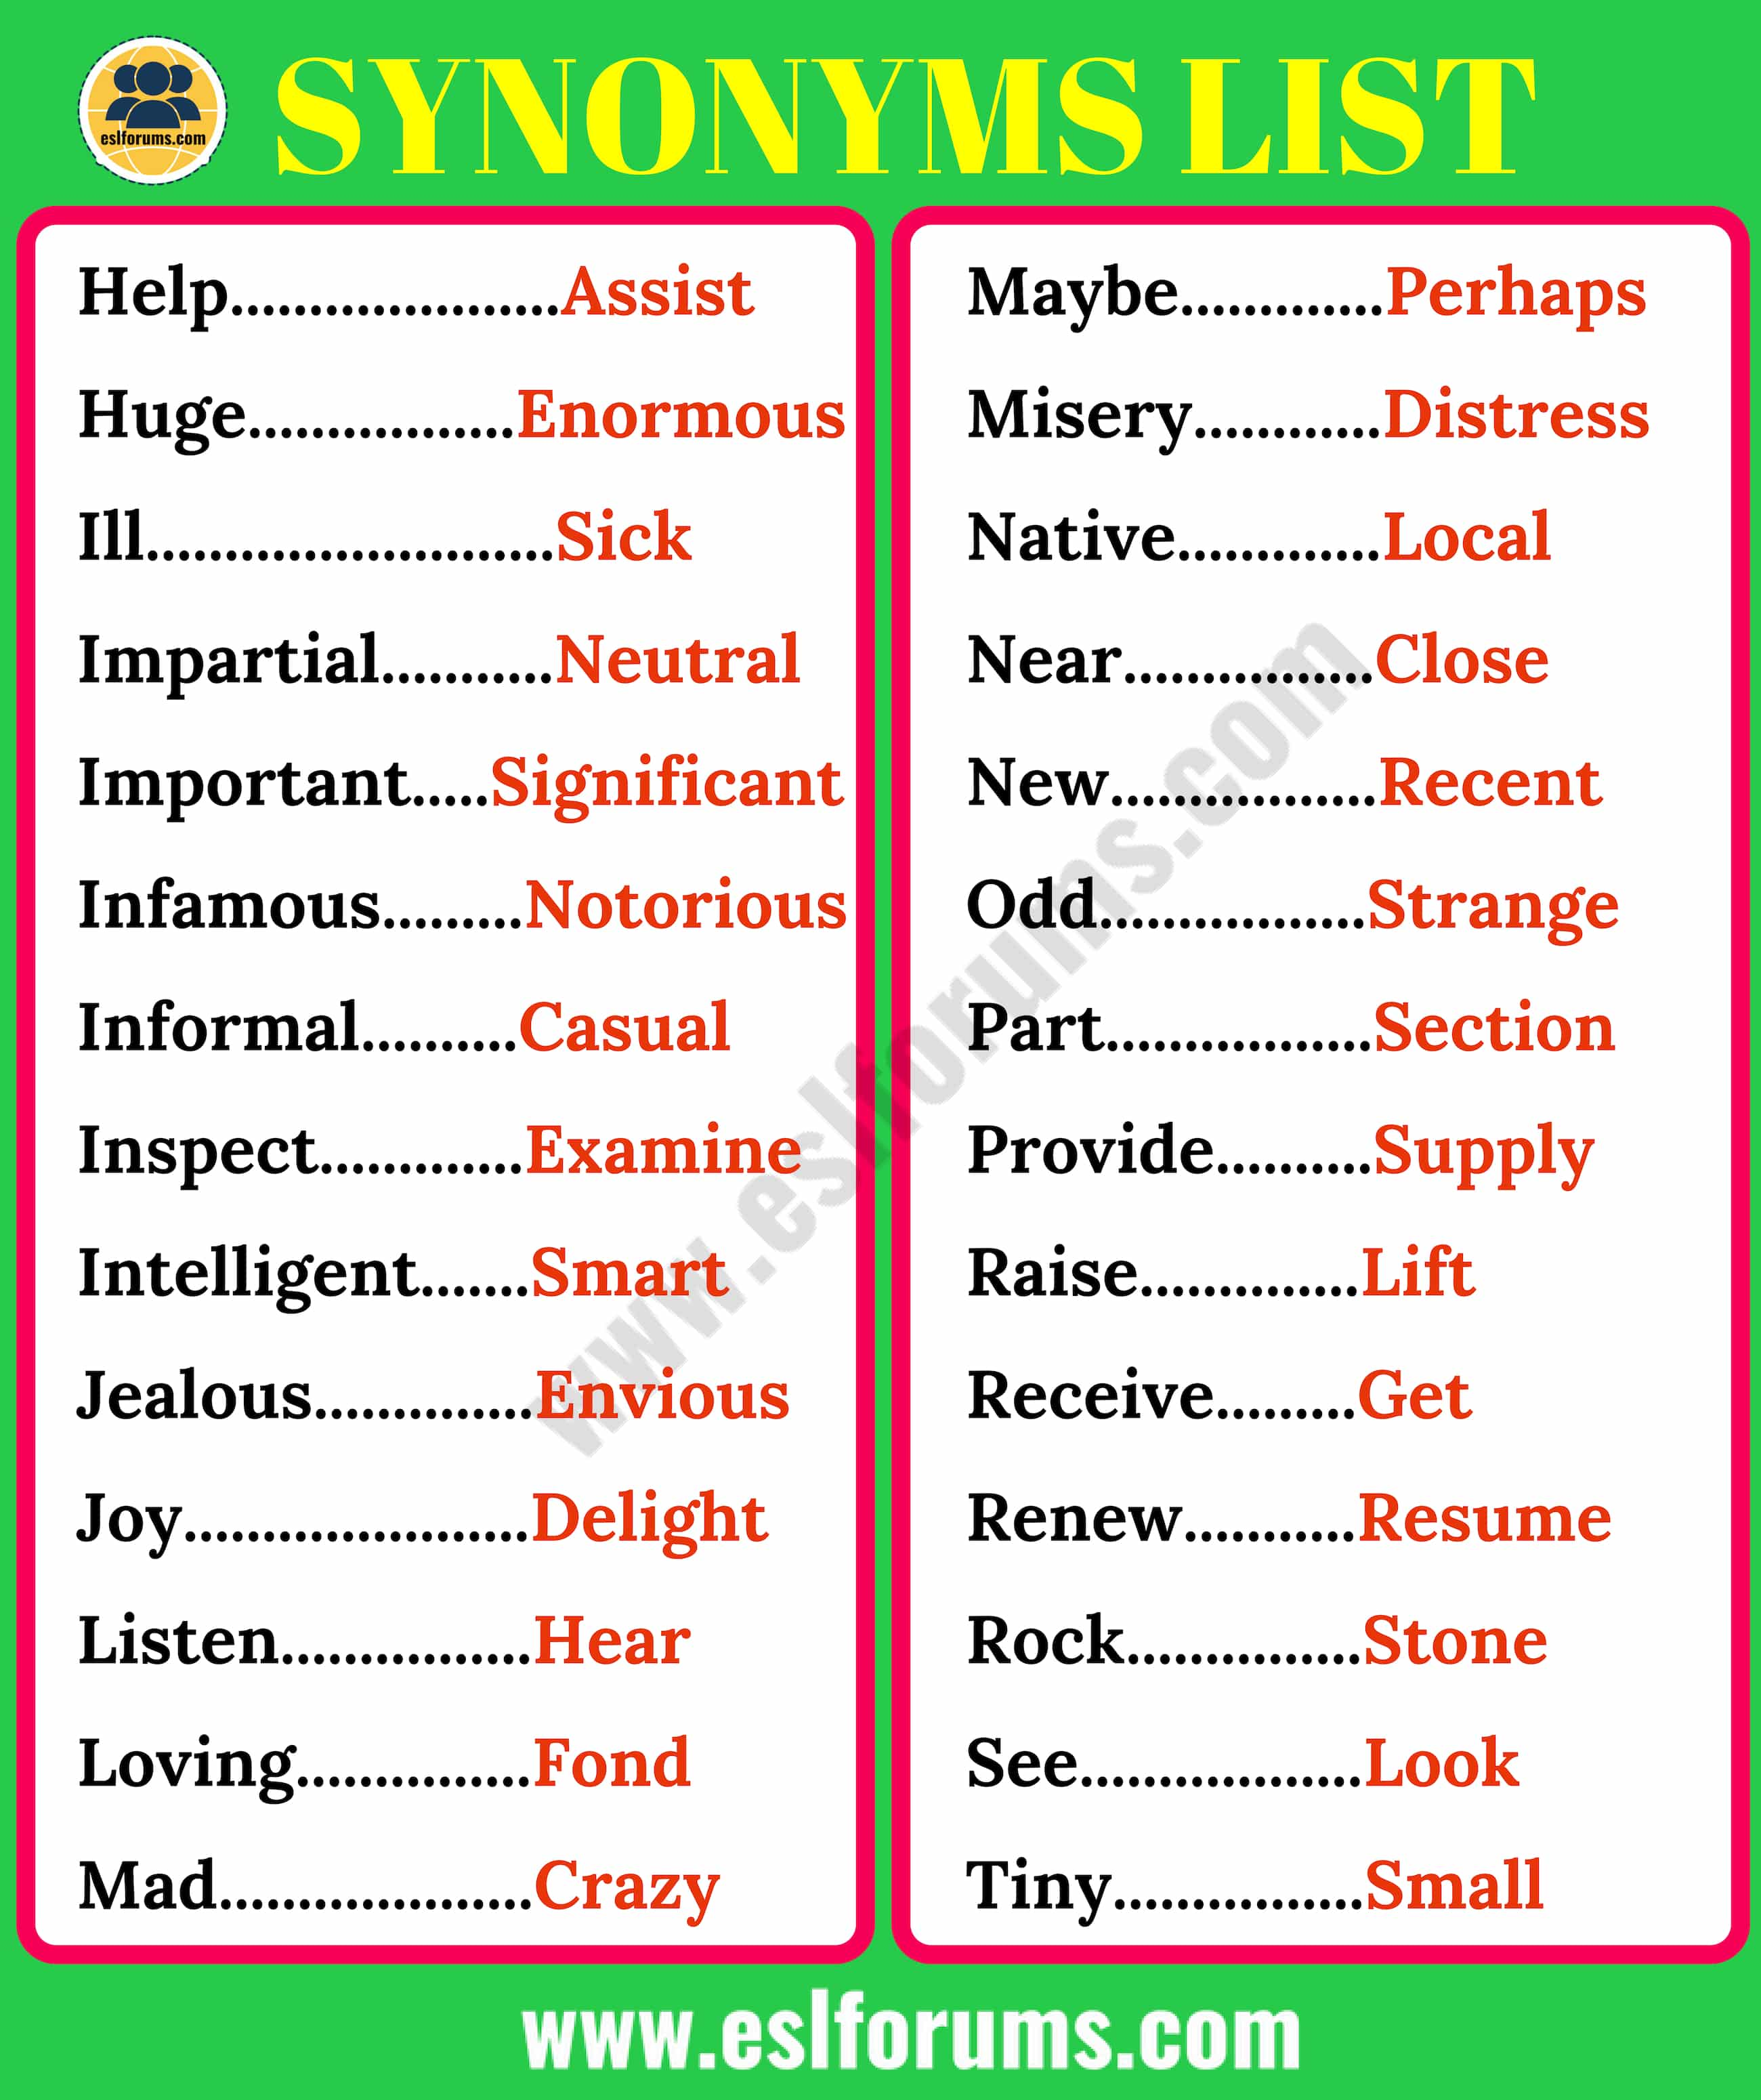 Synonyms List Of 200 Synonyms In English For Esl Learners Esl Forums Best synonyms for 'very lucky' are 'best of luck', 'much luck' and 'really lucky'. list of 200 synonyms in english for esl